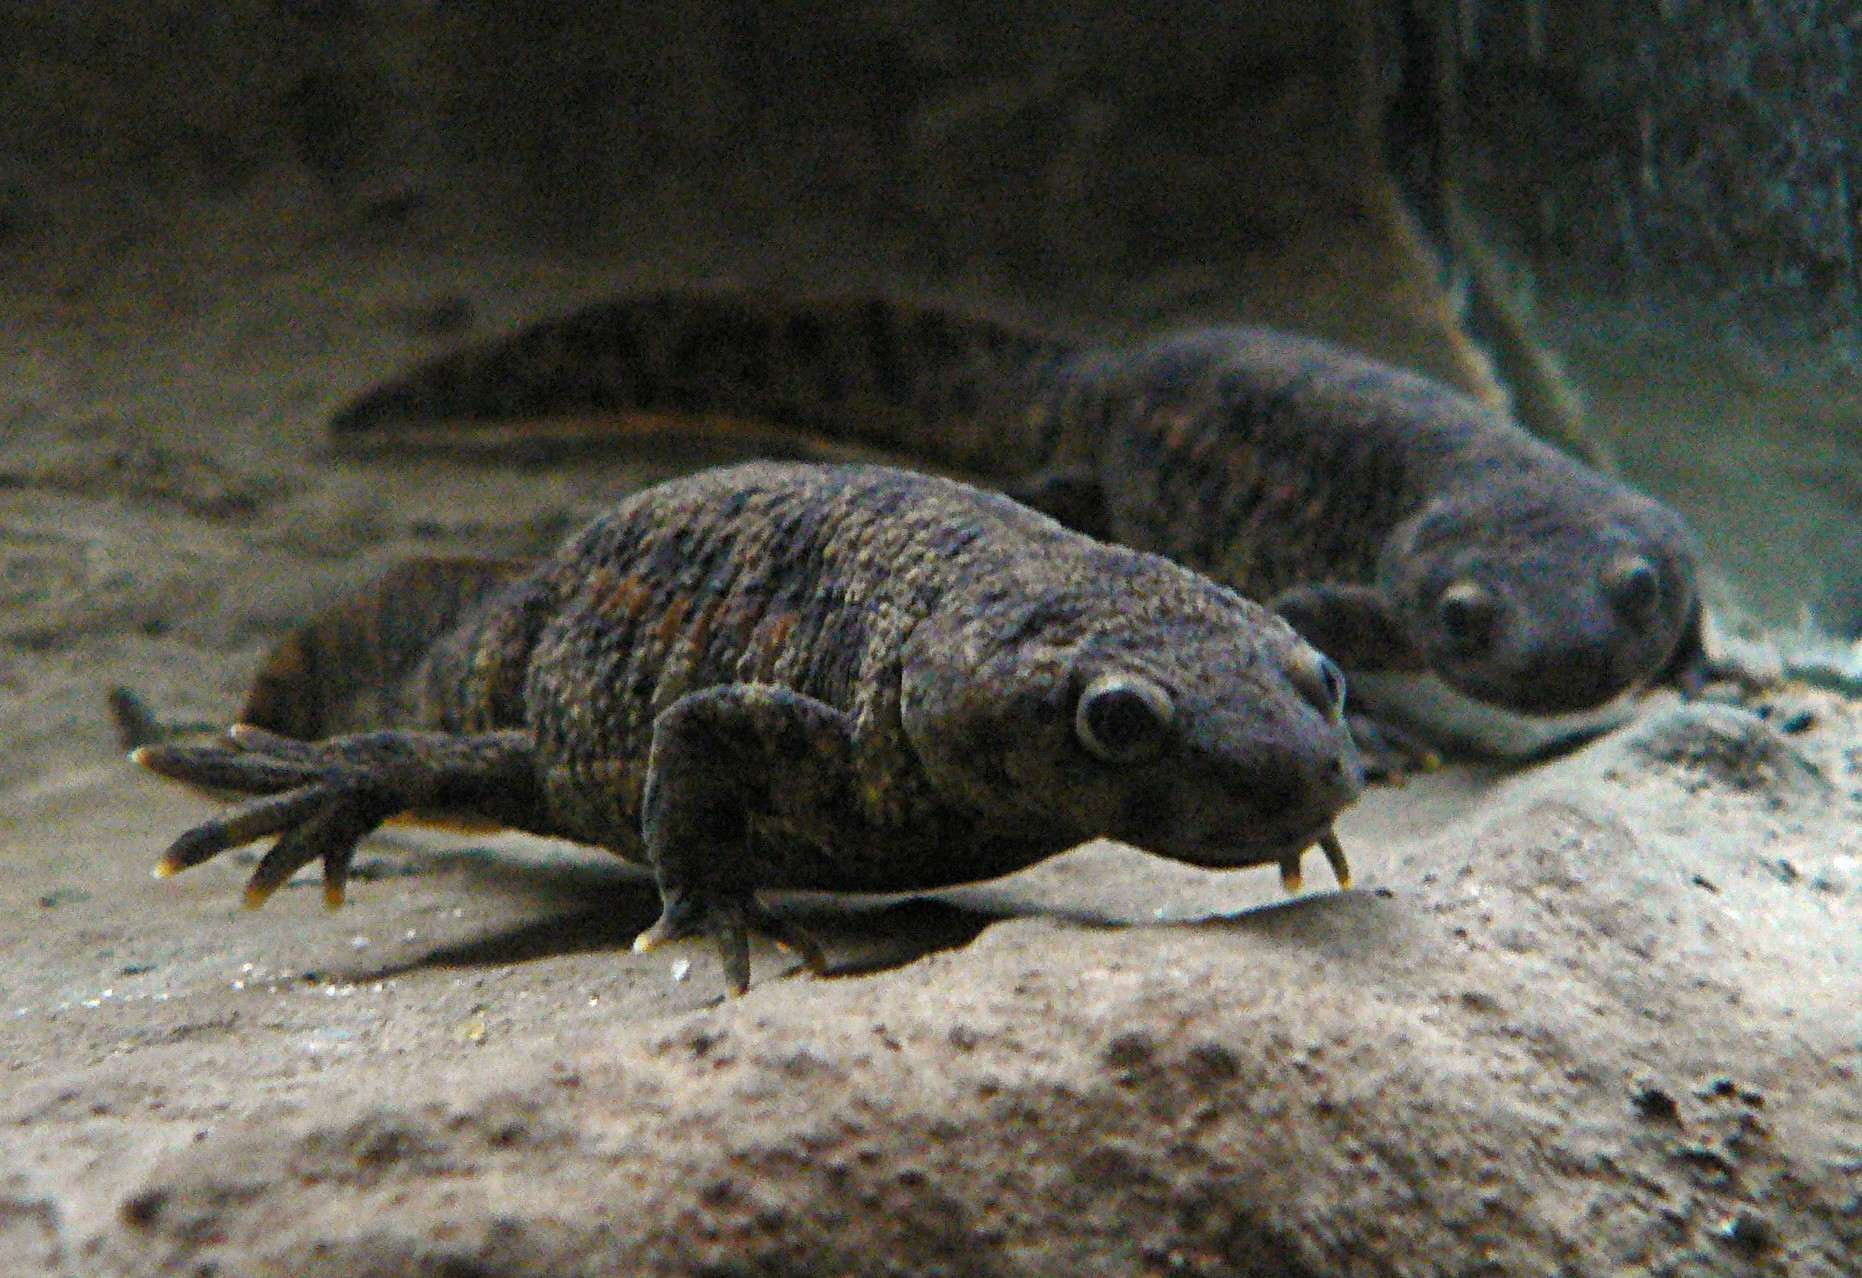 hight resolution of two grey newts taken from the front under water presumably in an aquarium